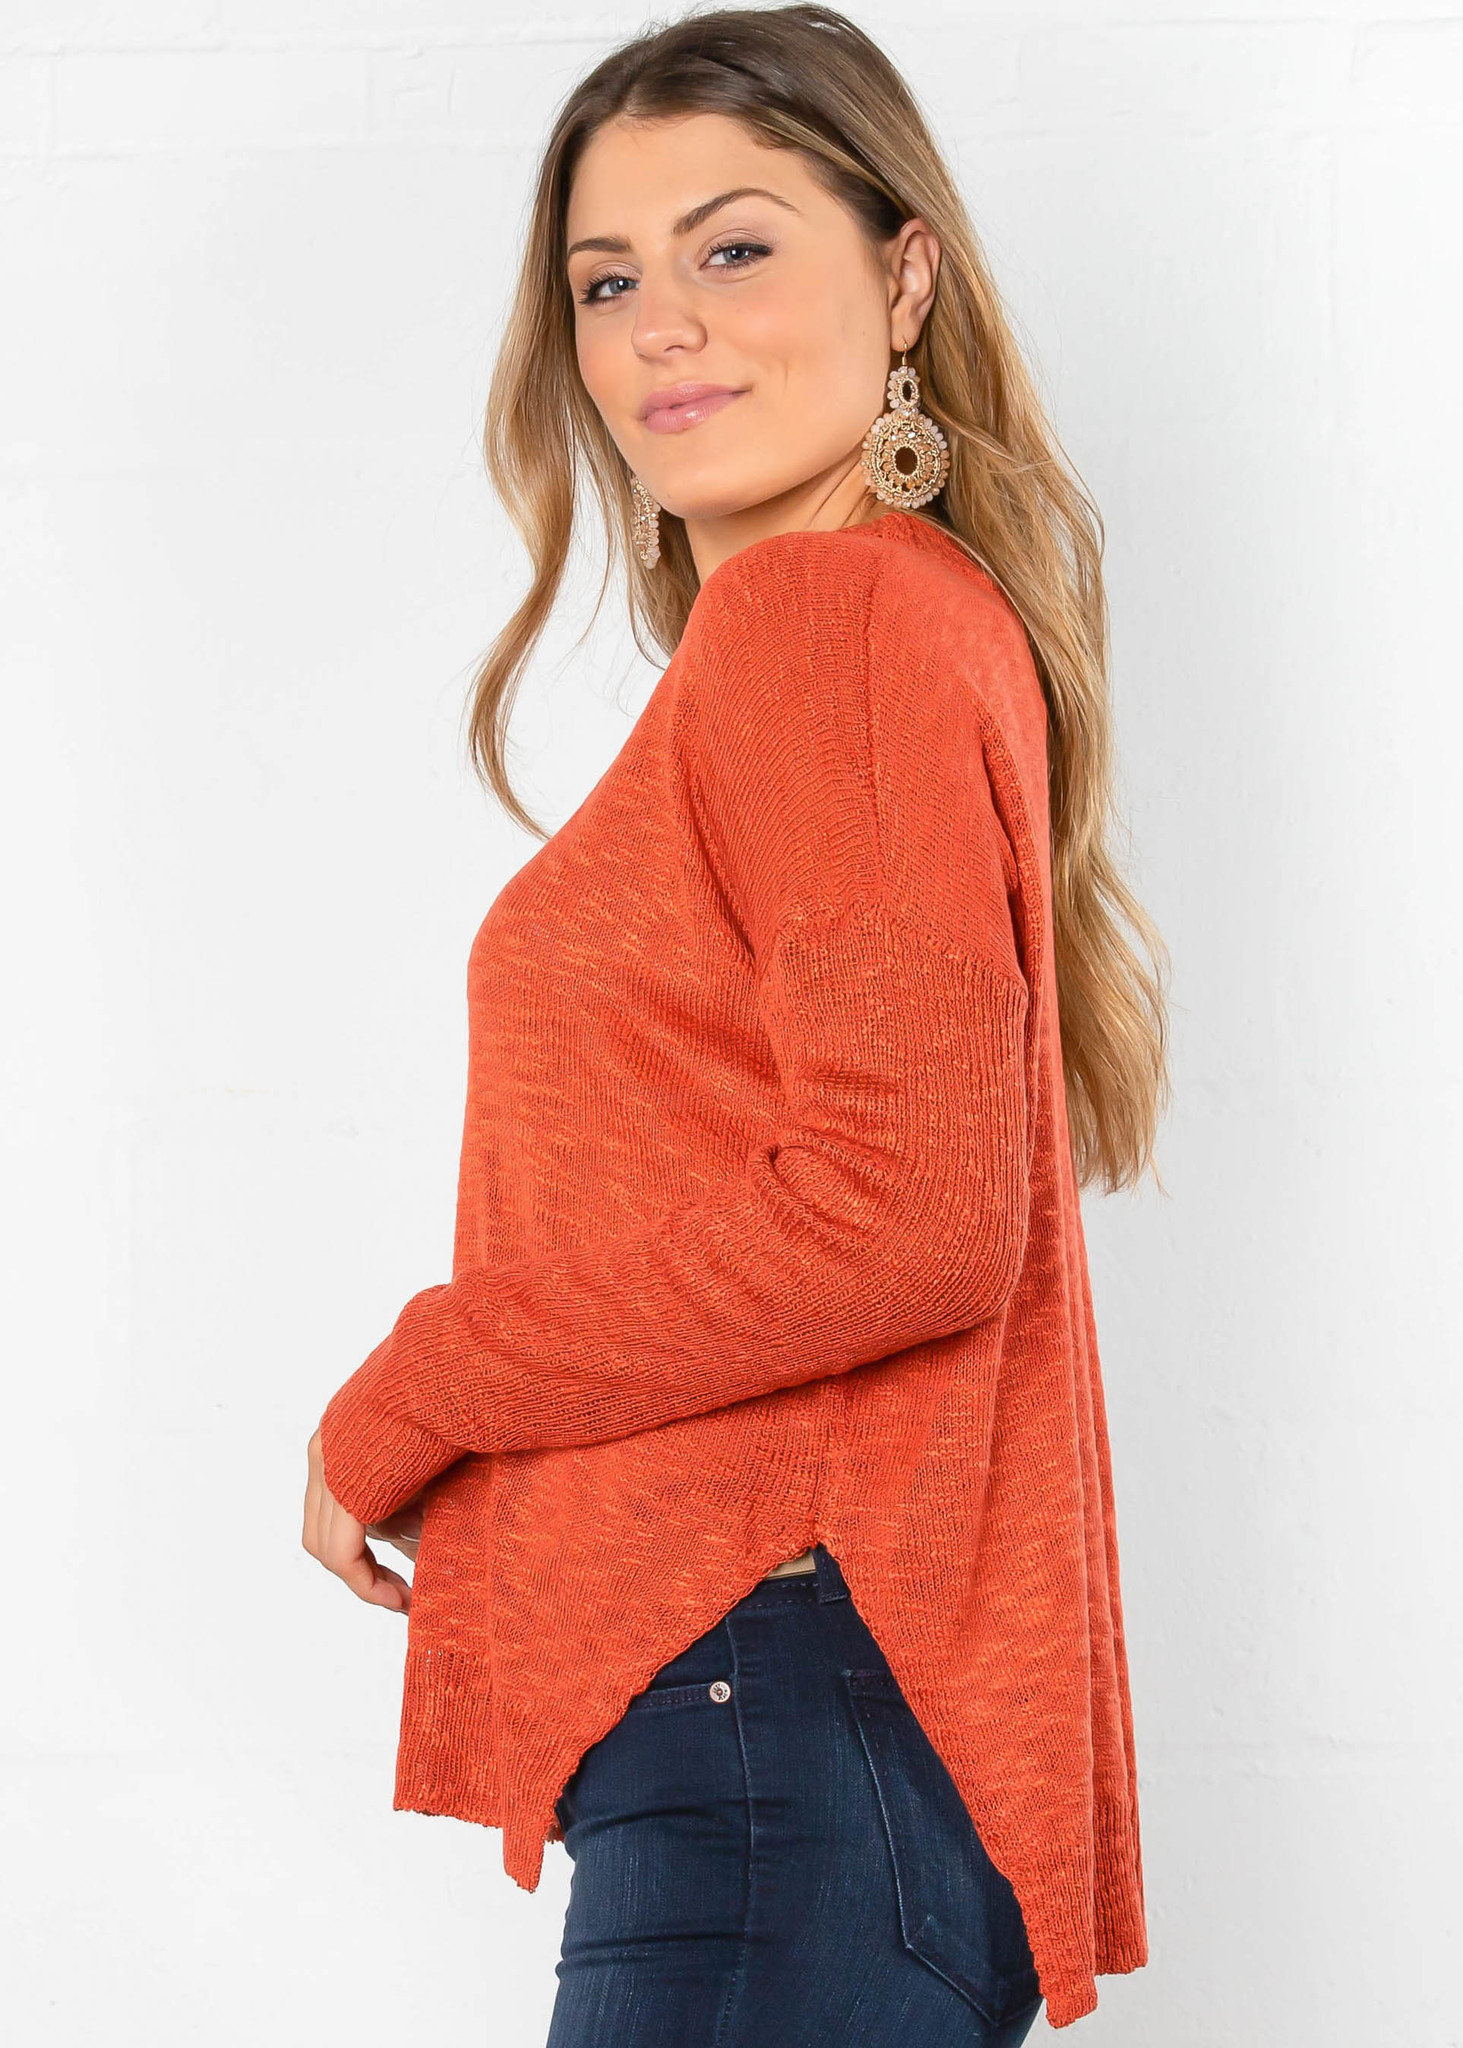 SPICE SPICE BABY SWEATER